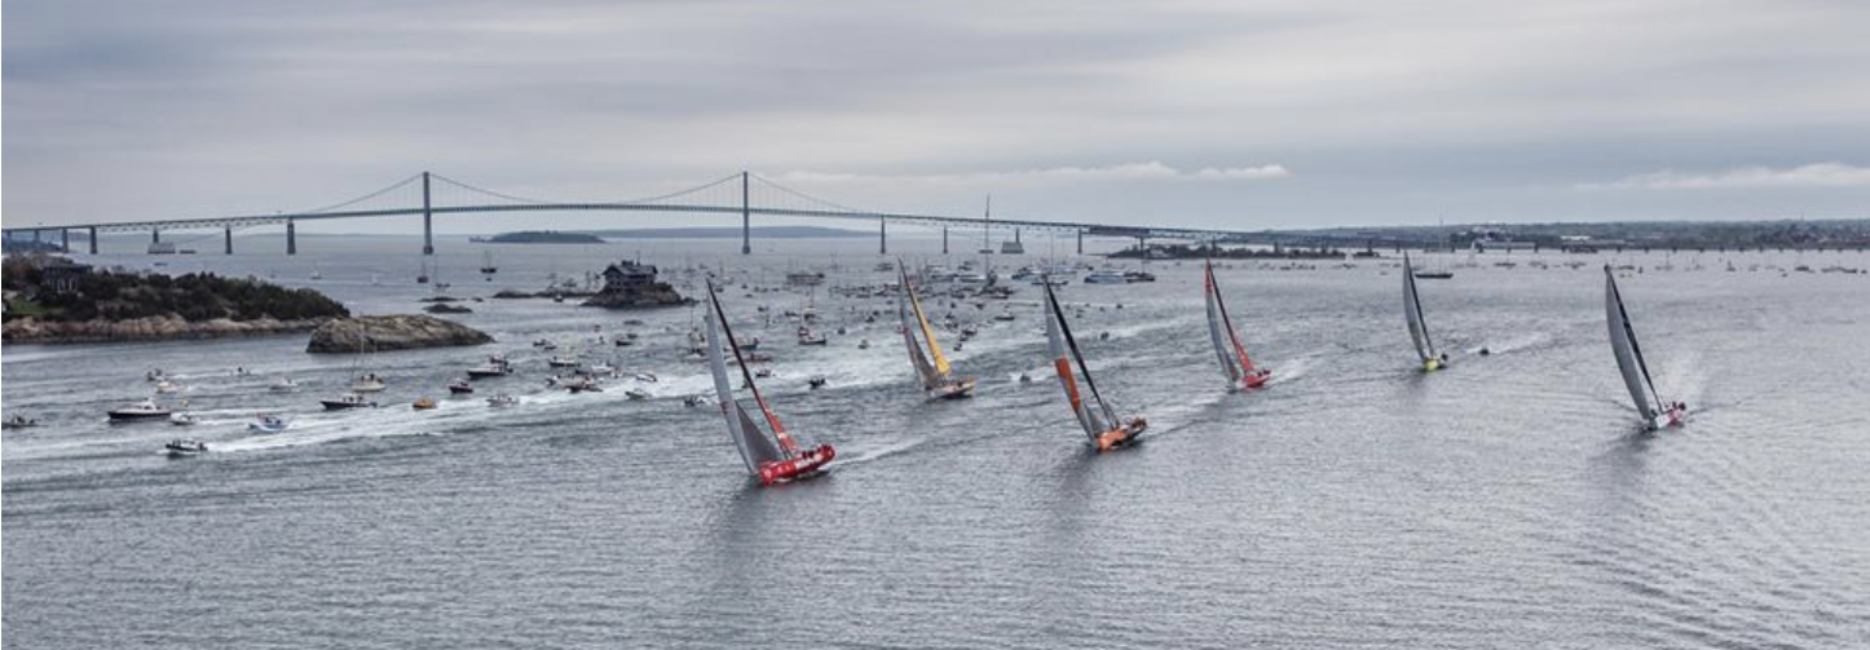 Newport, RI Events: Volvo Ocean Race May 2018